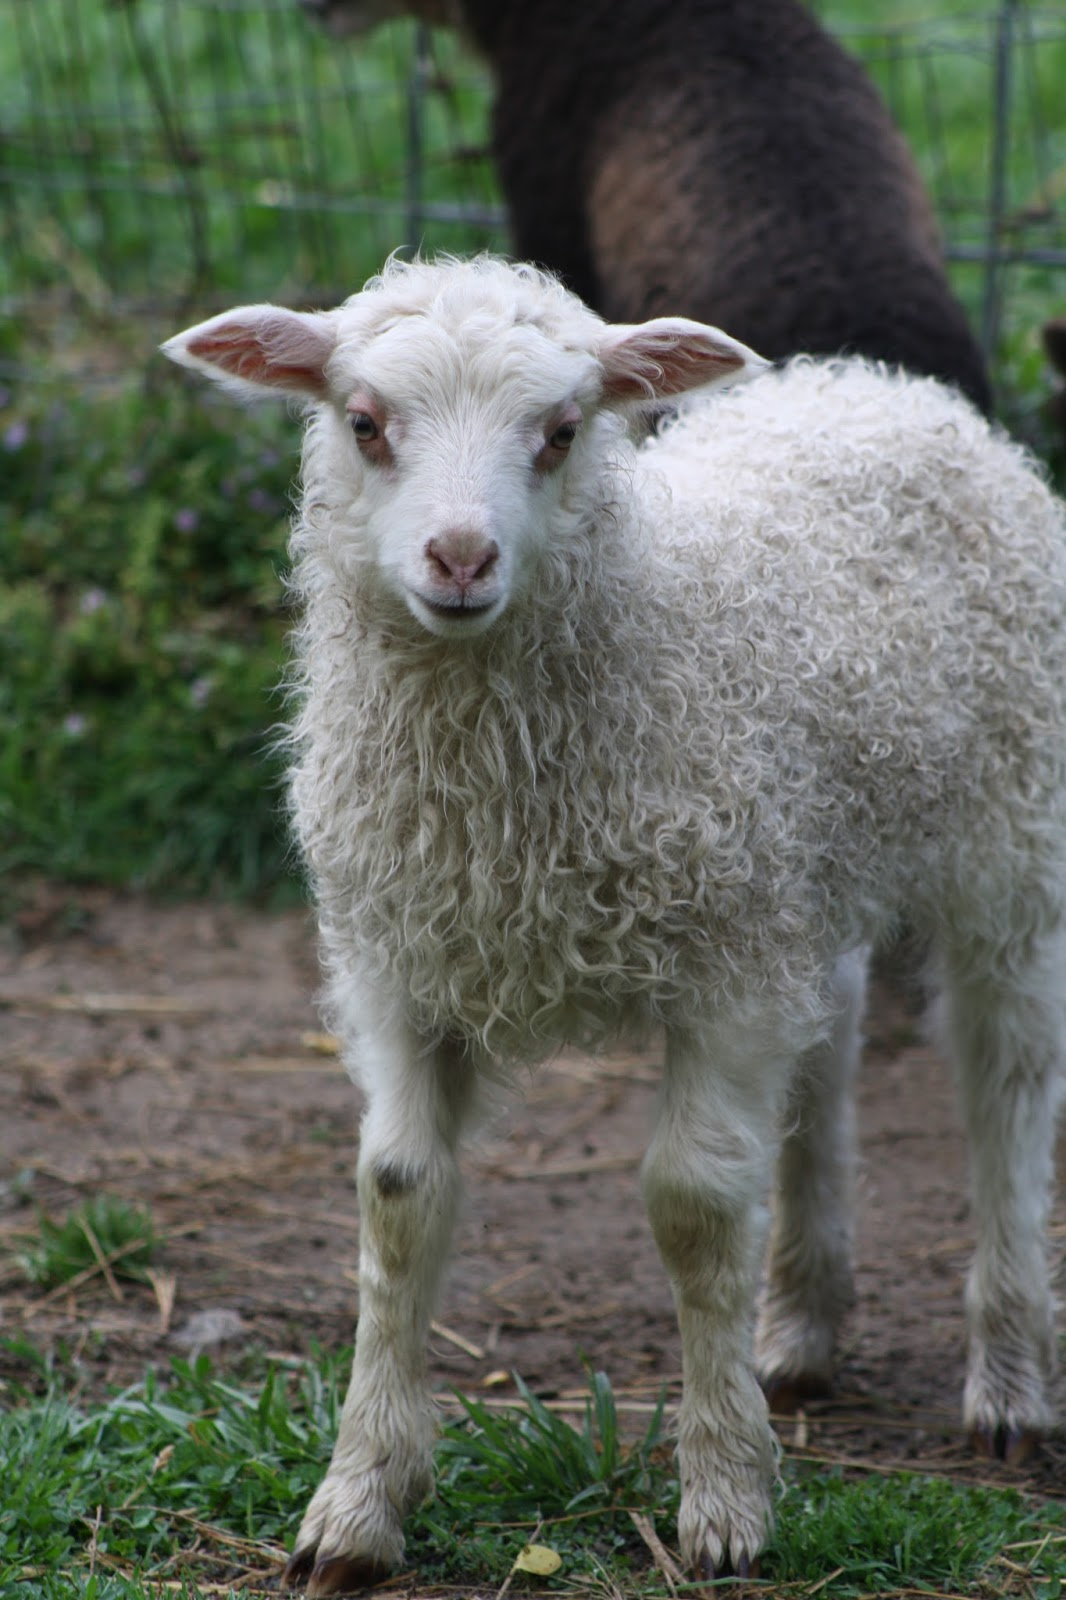 Sheep R Us: 2016 Hidaway Farms Lambs